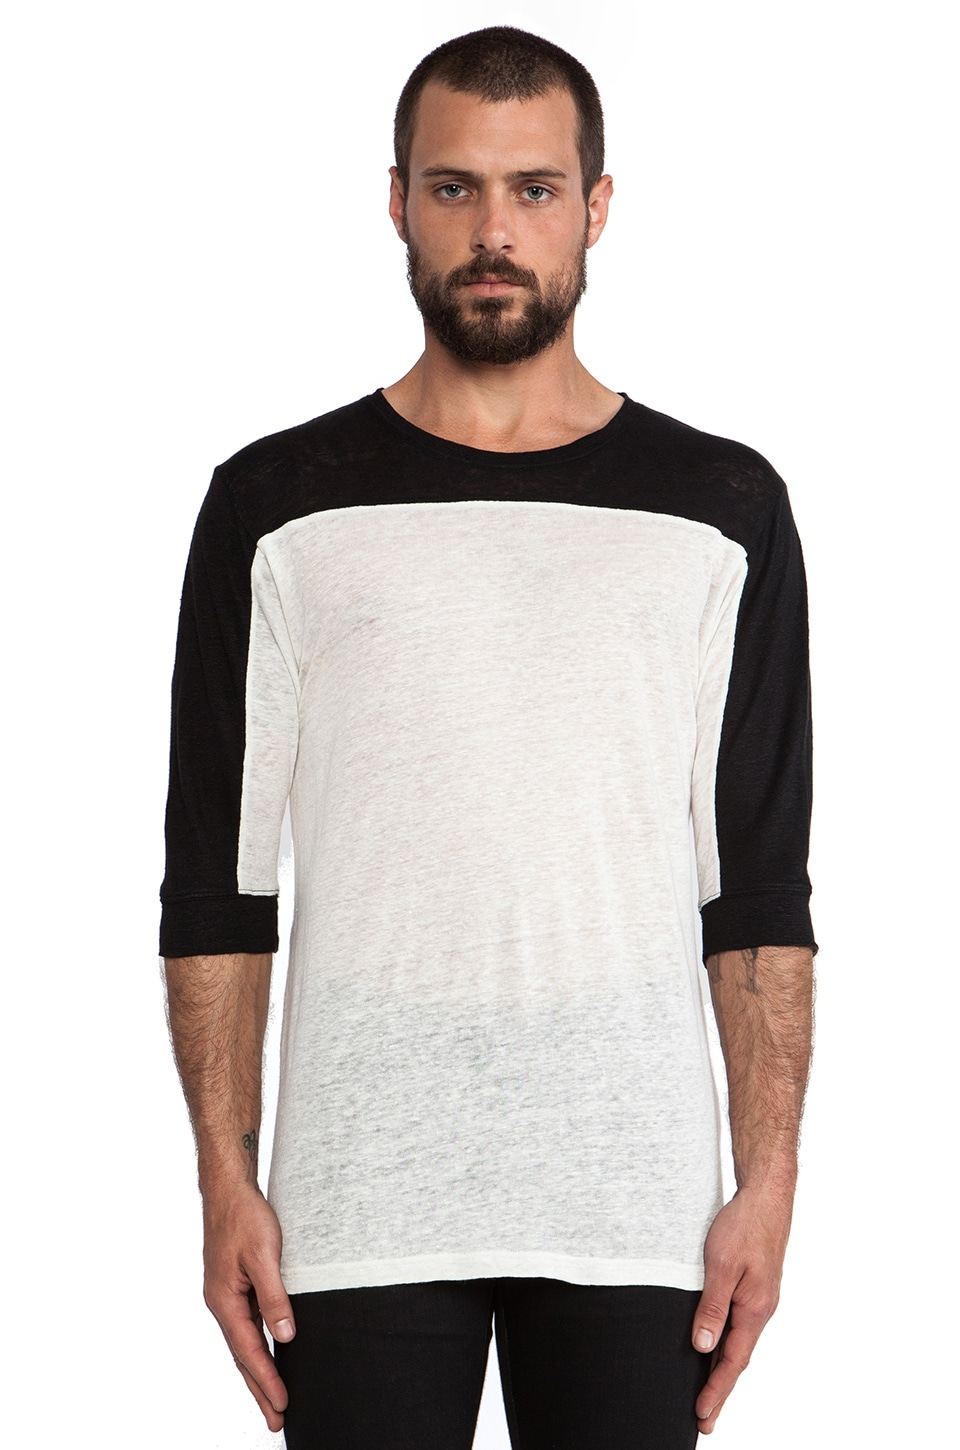 IRO Agnel T-Shirt in Black & Off White